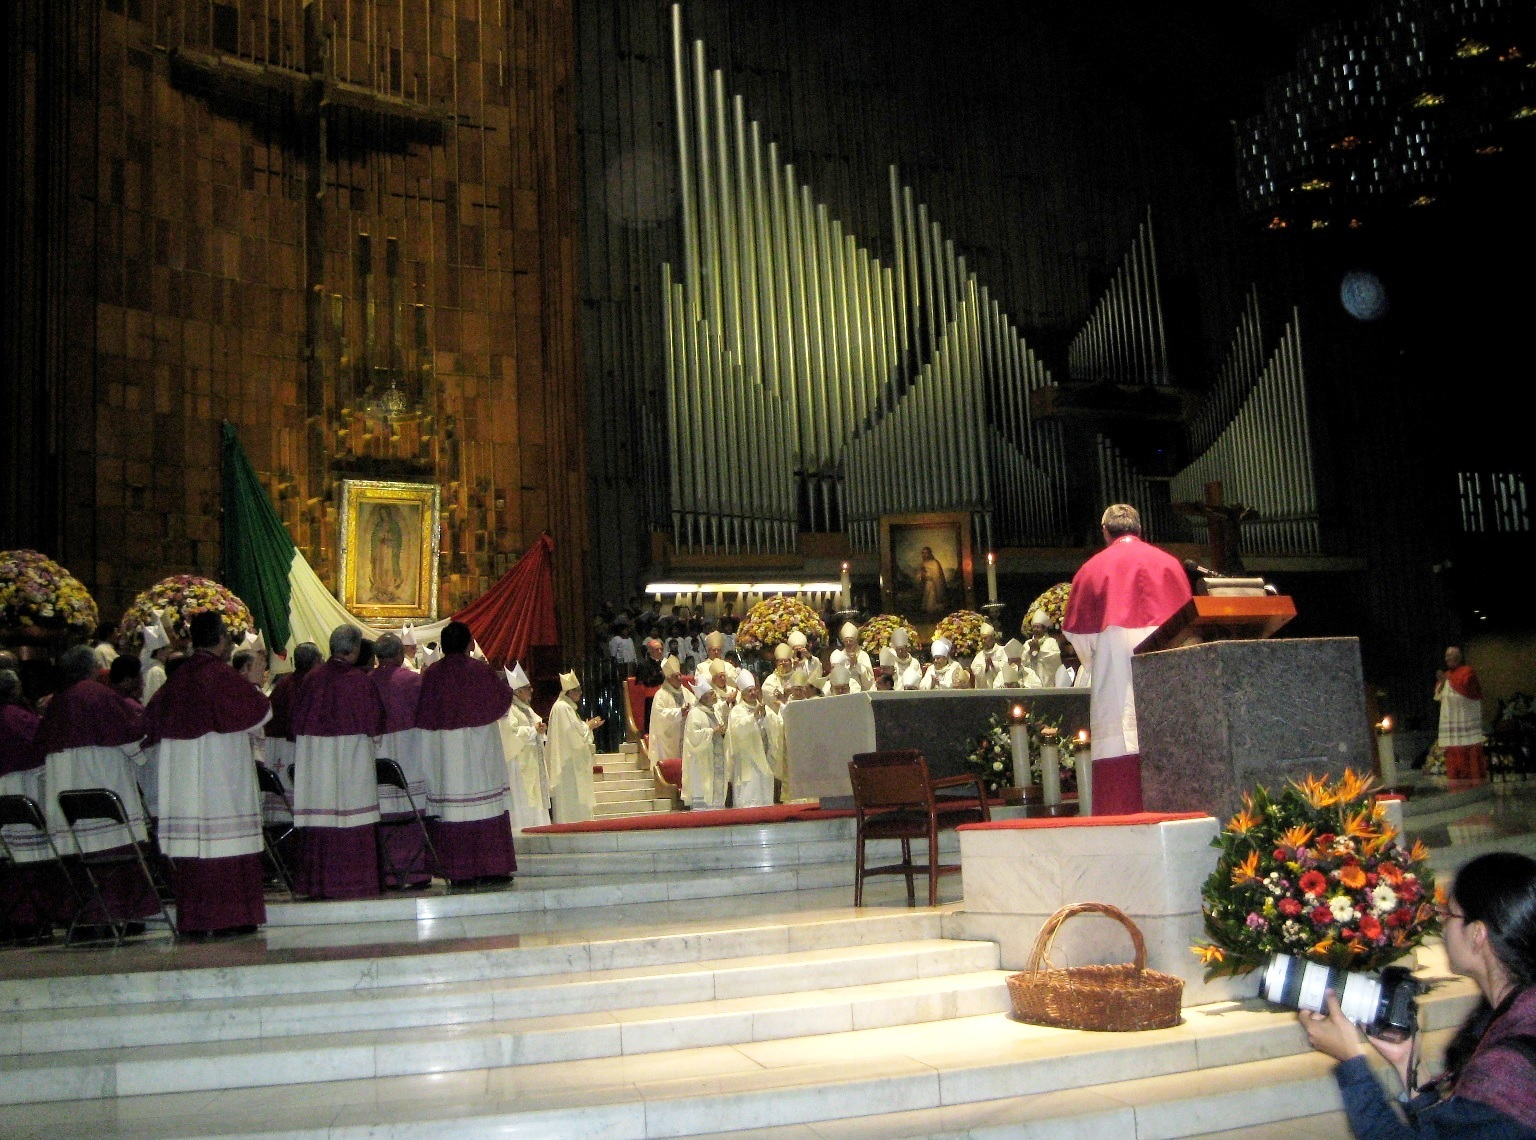 Mass at the Mexico City Basilica